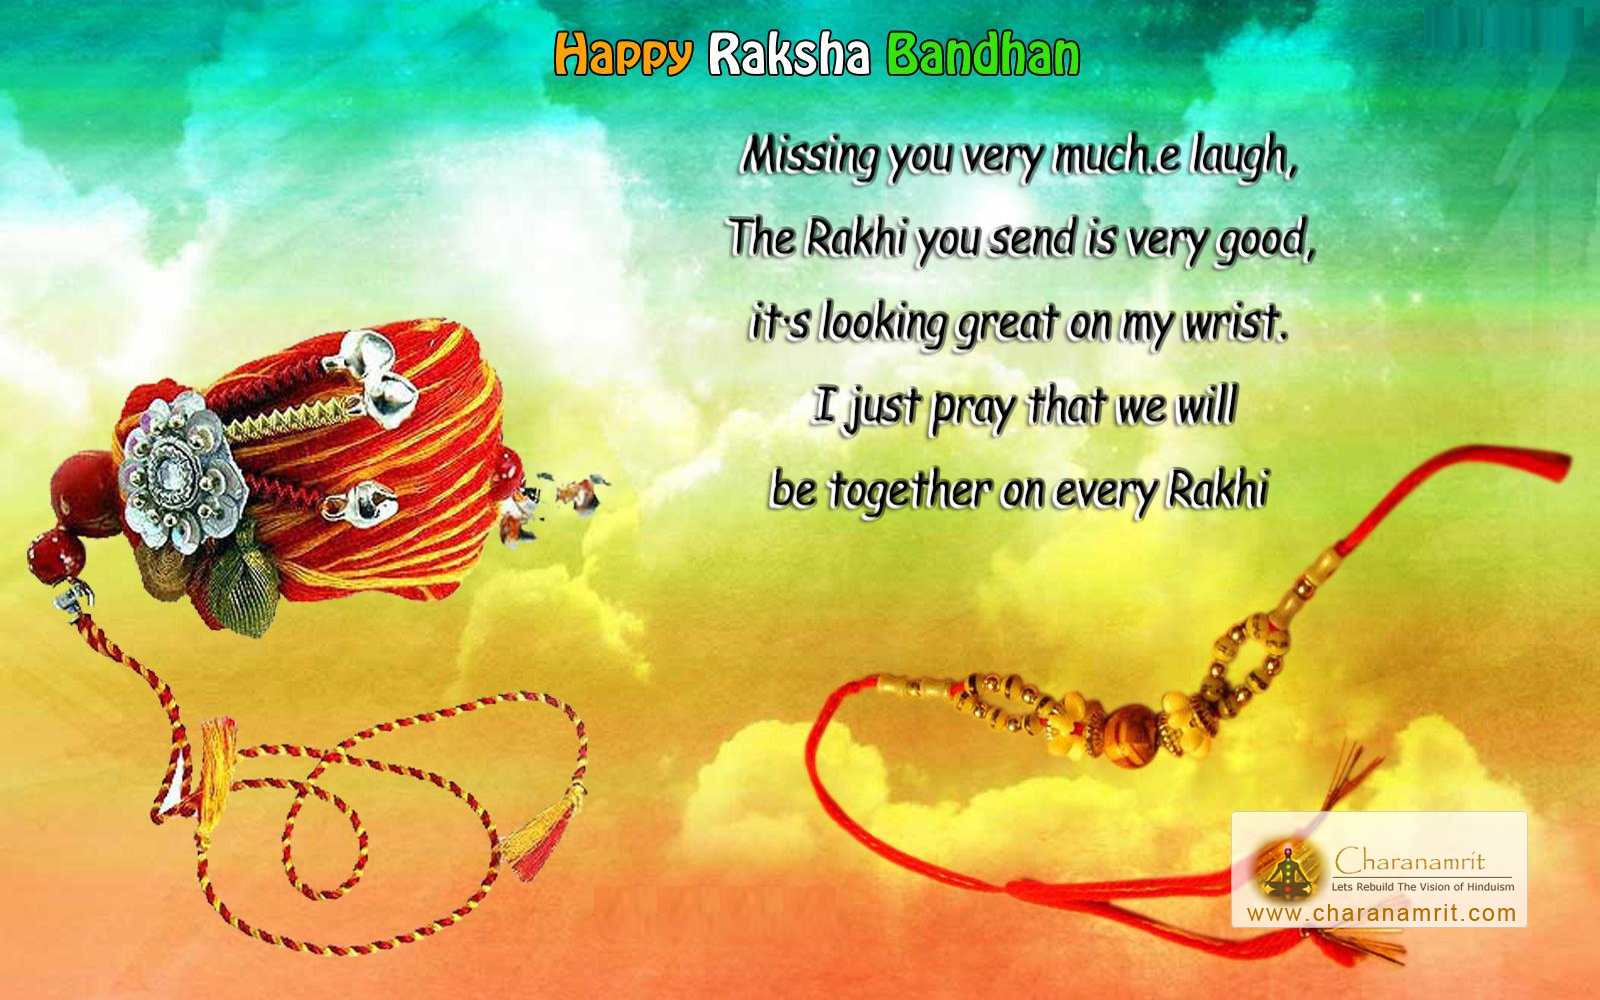 Wallpaper download english - Download Raksha Bandhan Hd Image